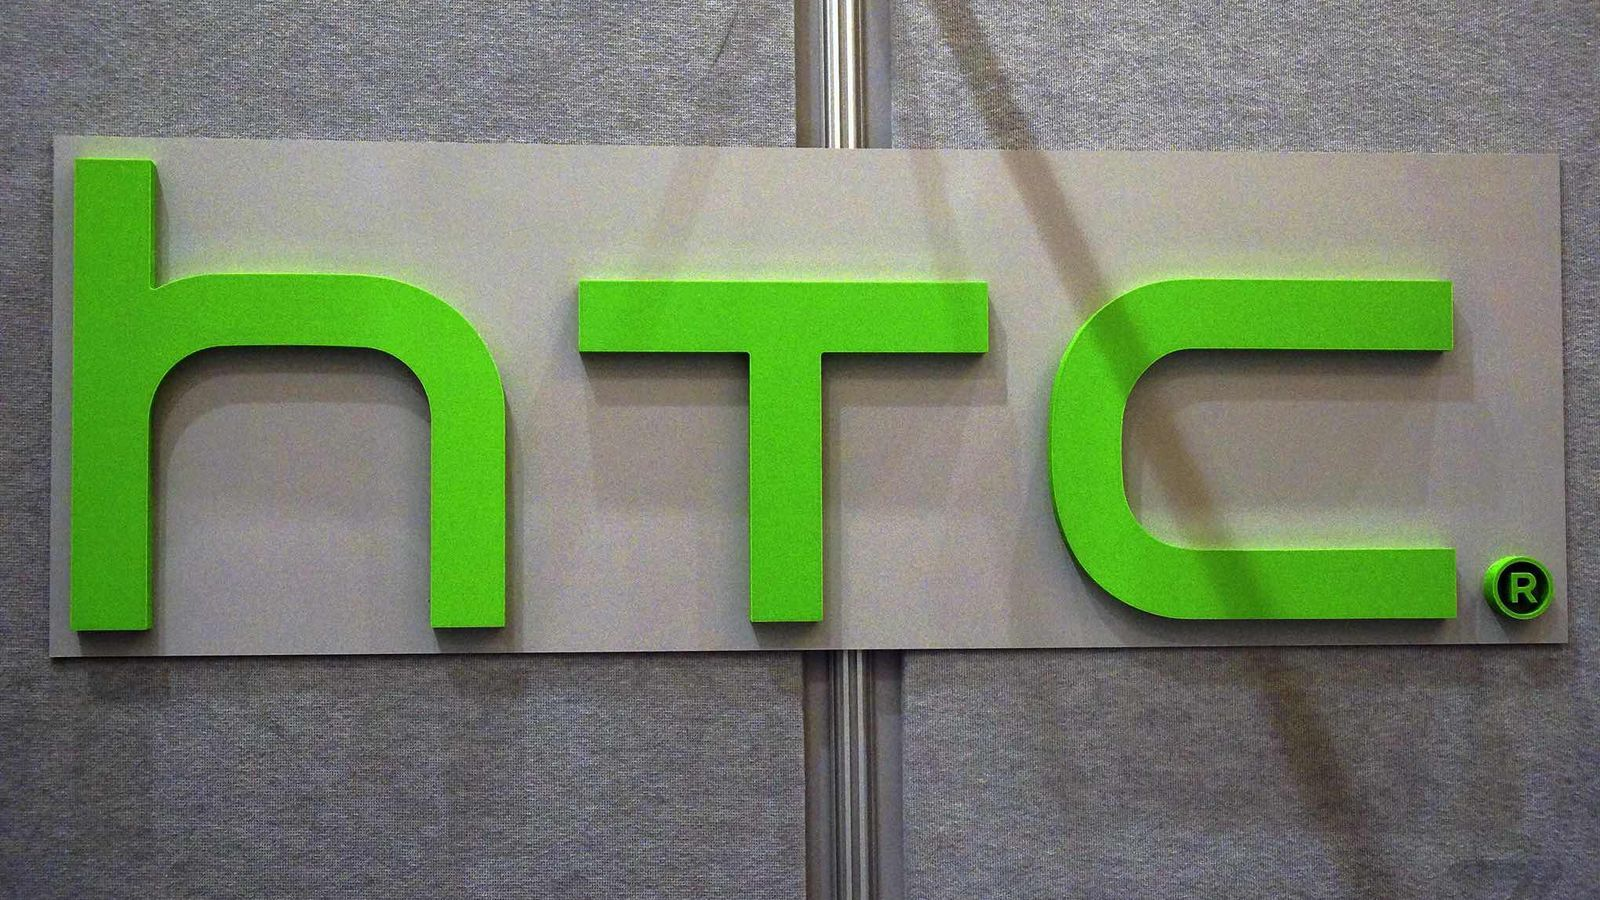 HTC might spin off Vive business or sell entire company